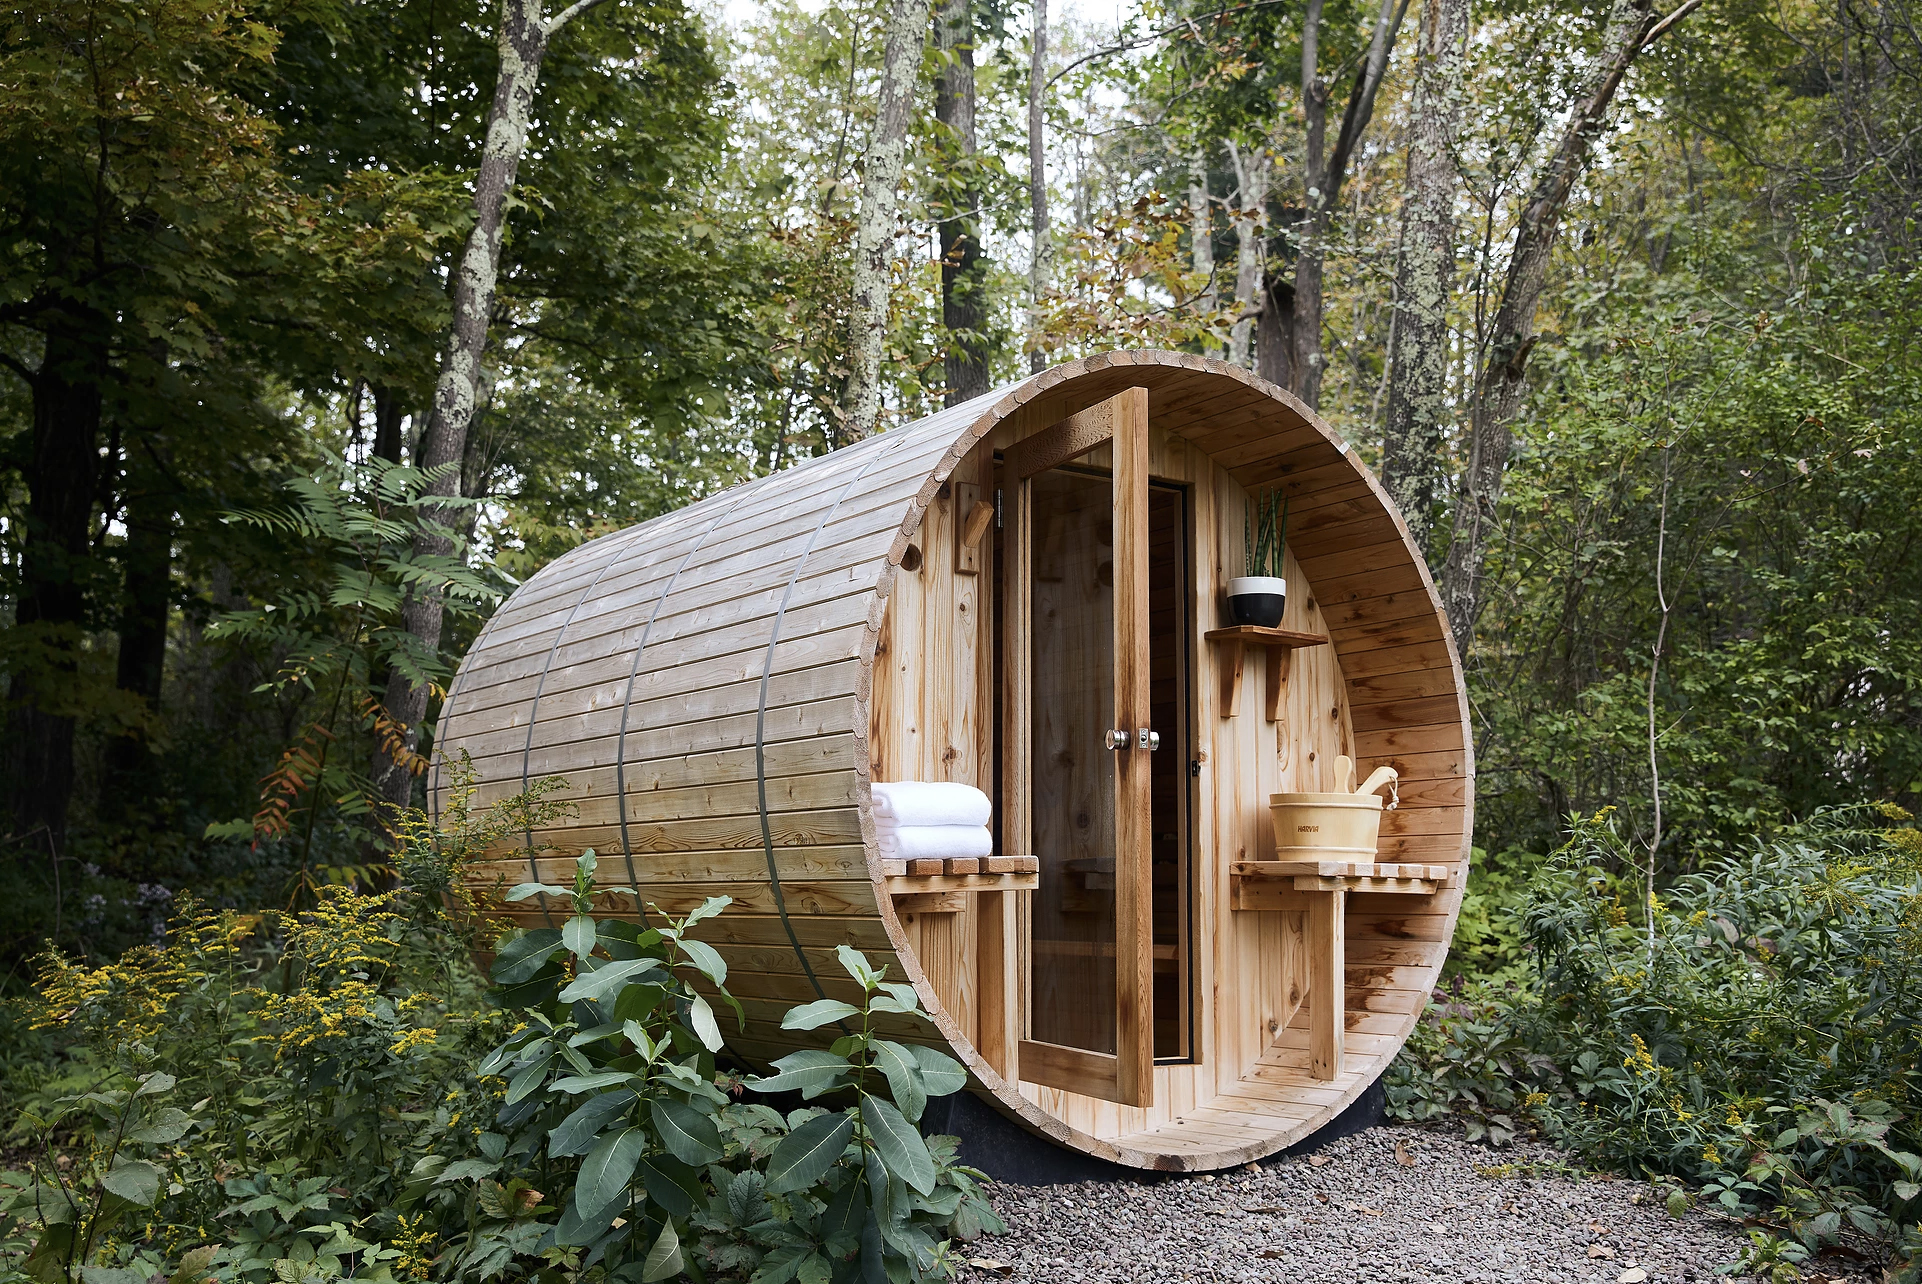 Glamping-Eastwind-Catskils-Suana.jpg?mtime=20190426074718#asset:105626